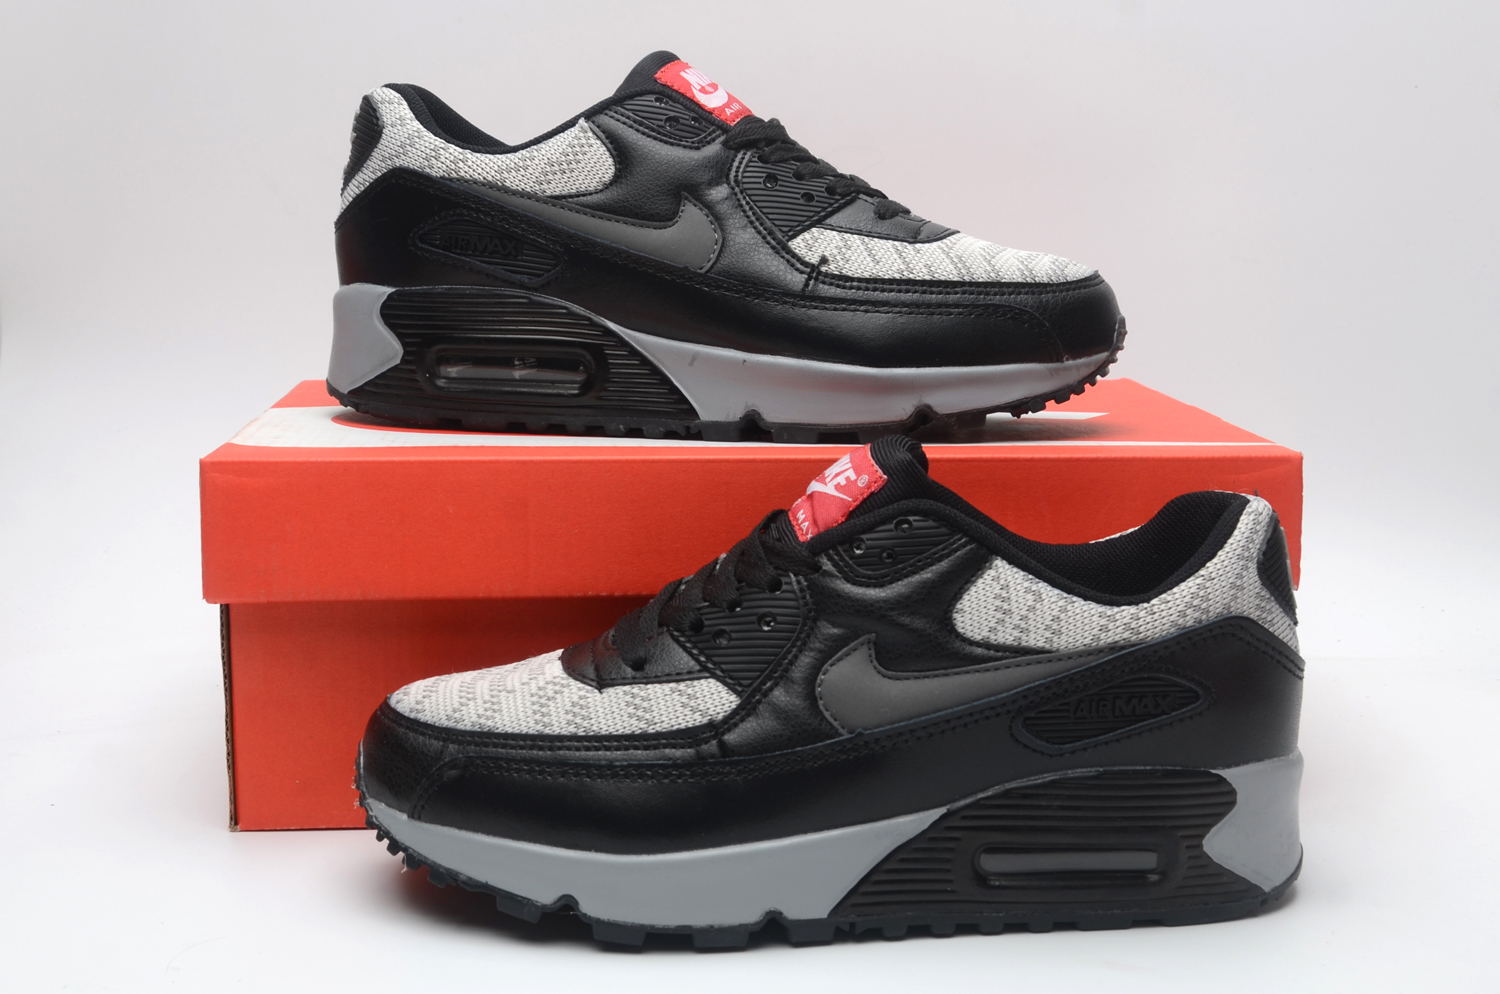 Women's Running weapon Air Max 90 Shoes 036